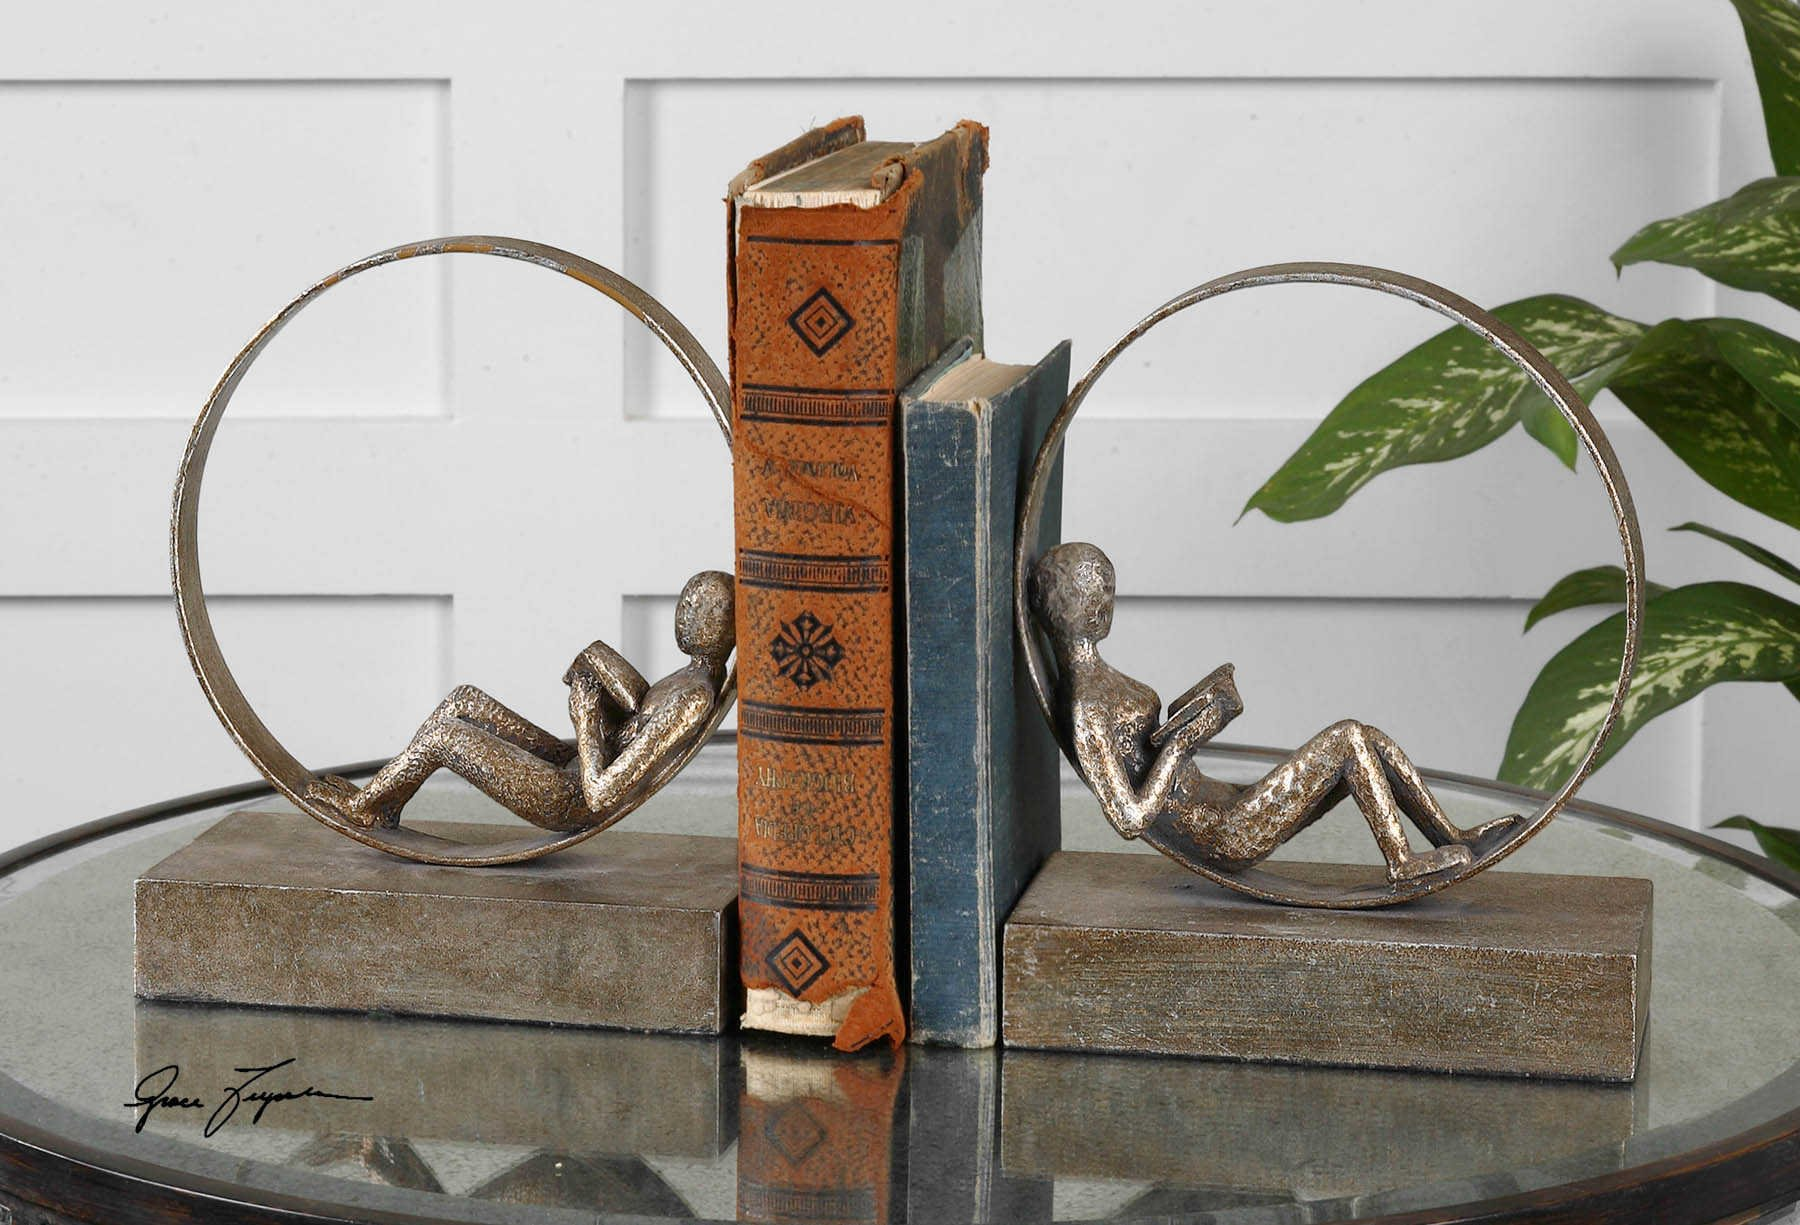 Vhomes Lights Reader Antique Bookends Set/2 The Lounging Collection Bookends